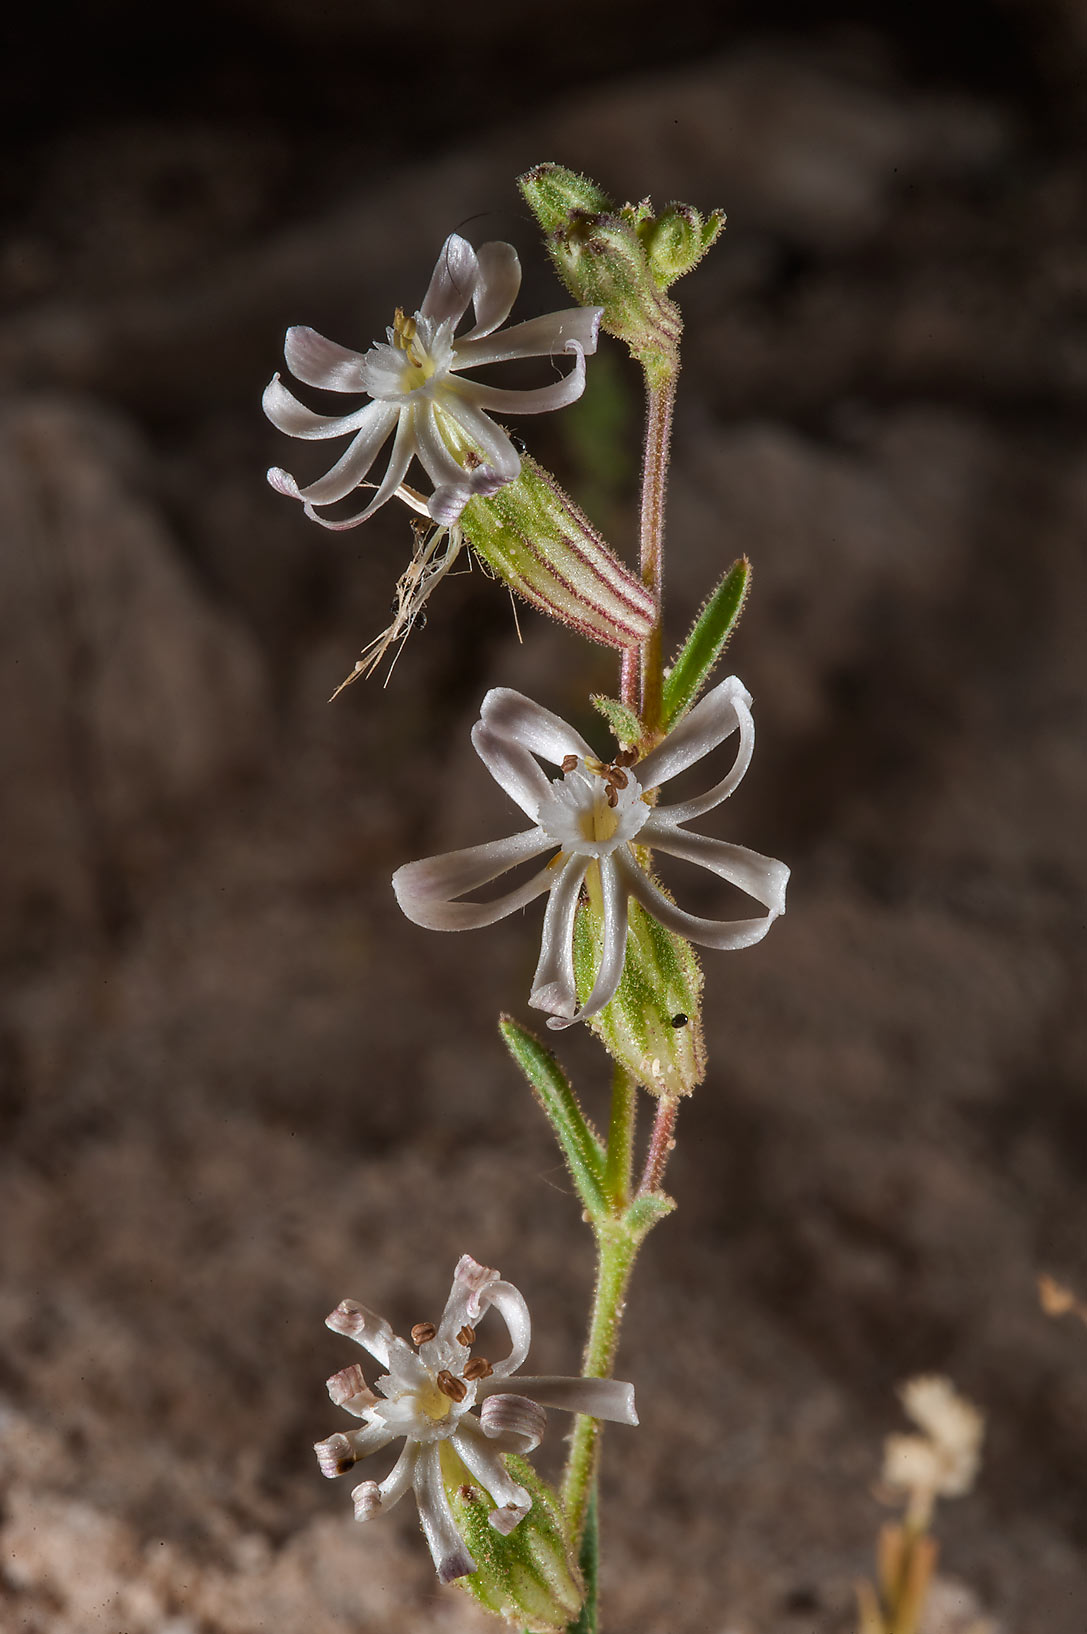 Silene arabica (Silene affinis, local name terba) south from Fuwairit. Northern Qatar